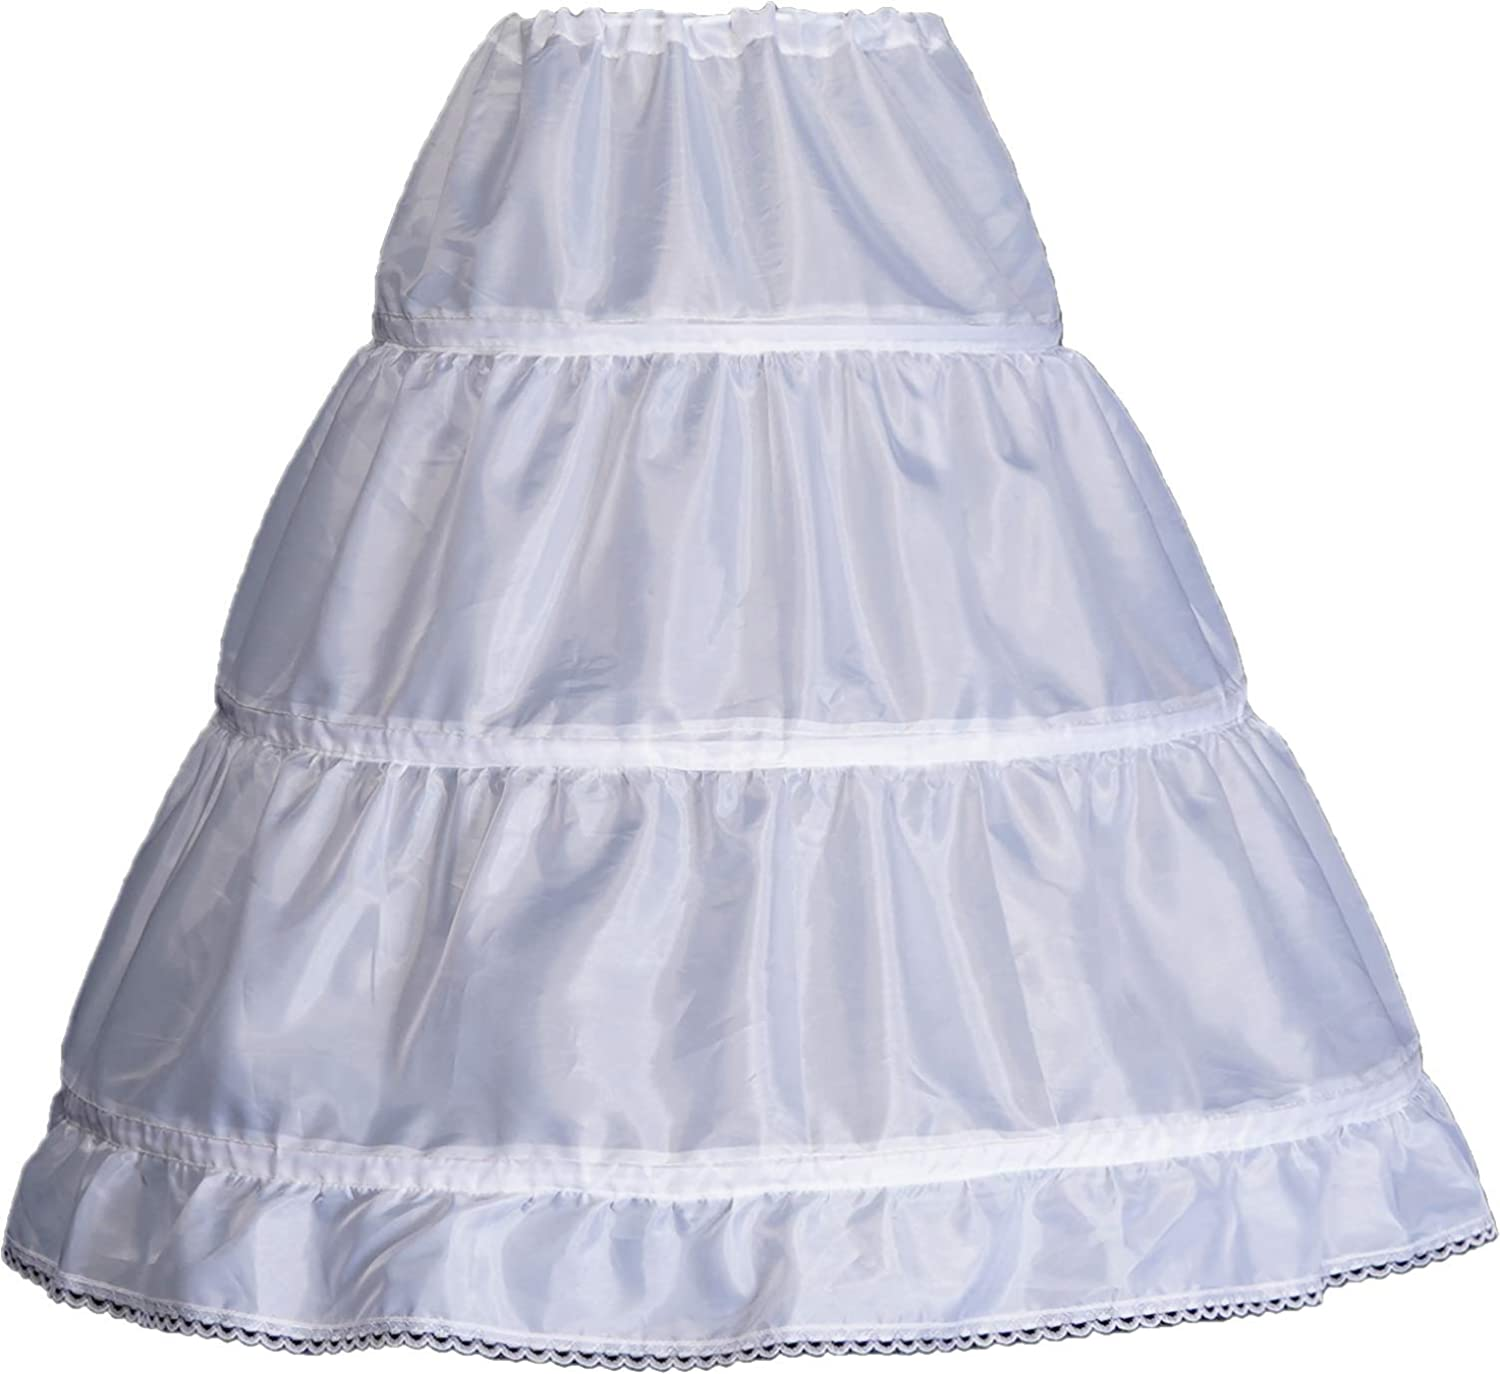 Details about  /Girls Kids 2 Layers Petticoat Layers A-line Pleated Ruffle Skirt Fancy A-line